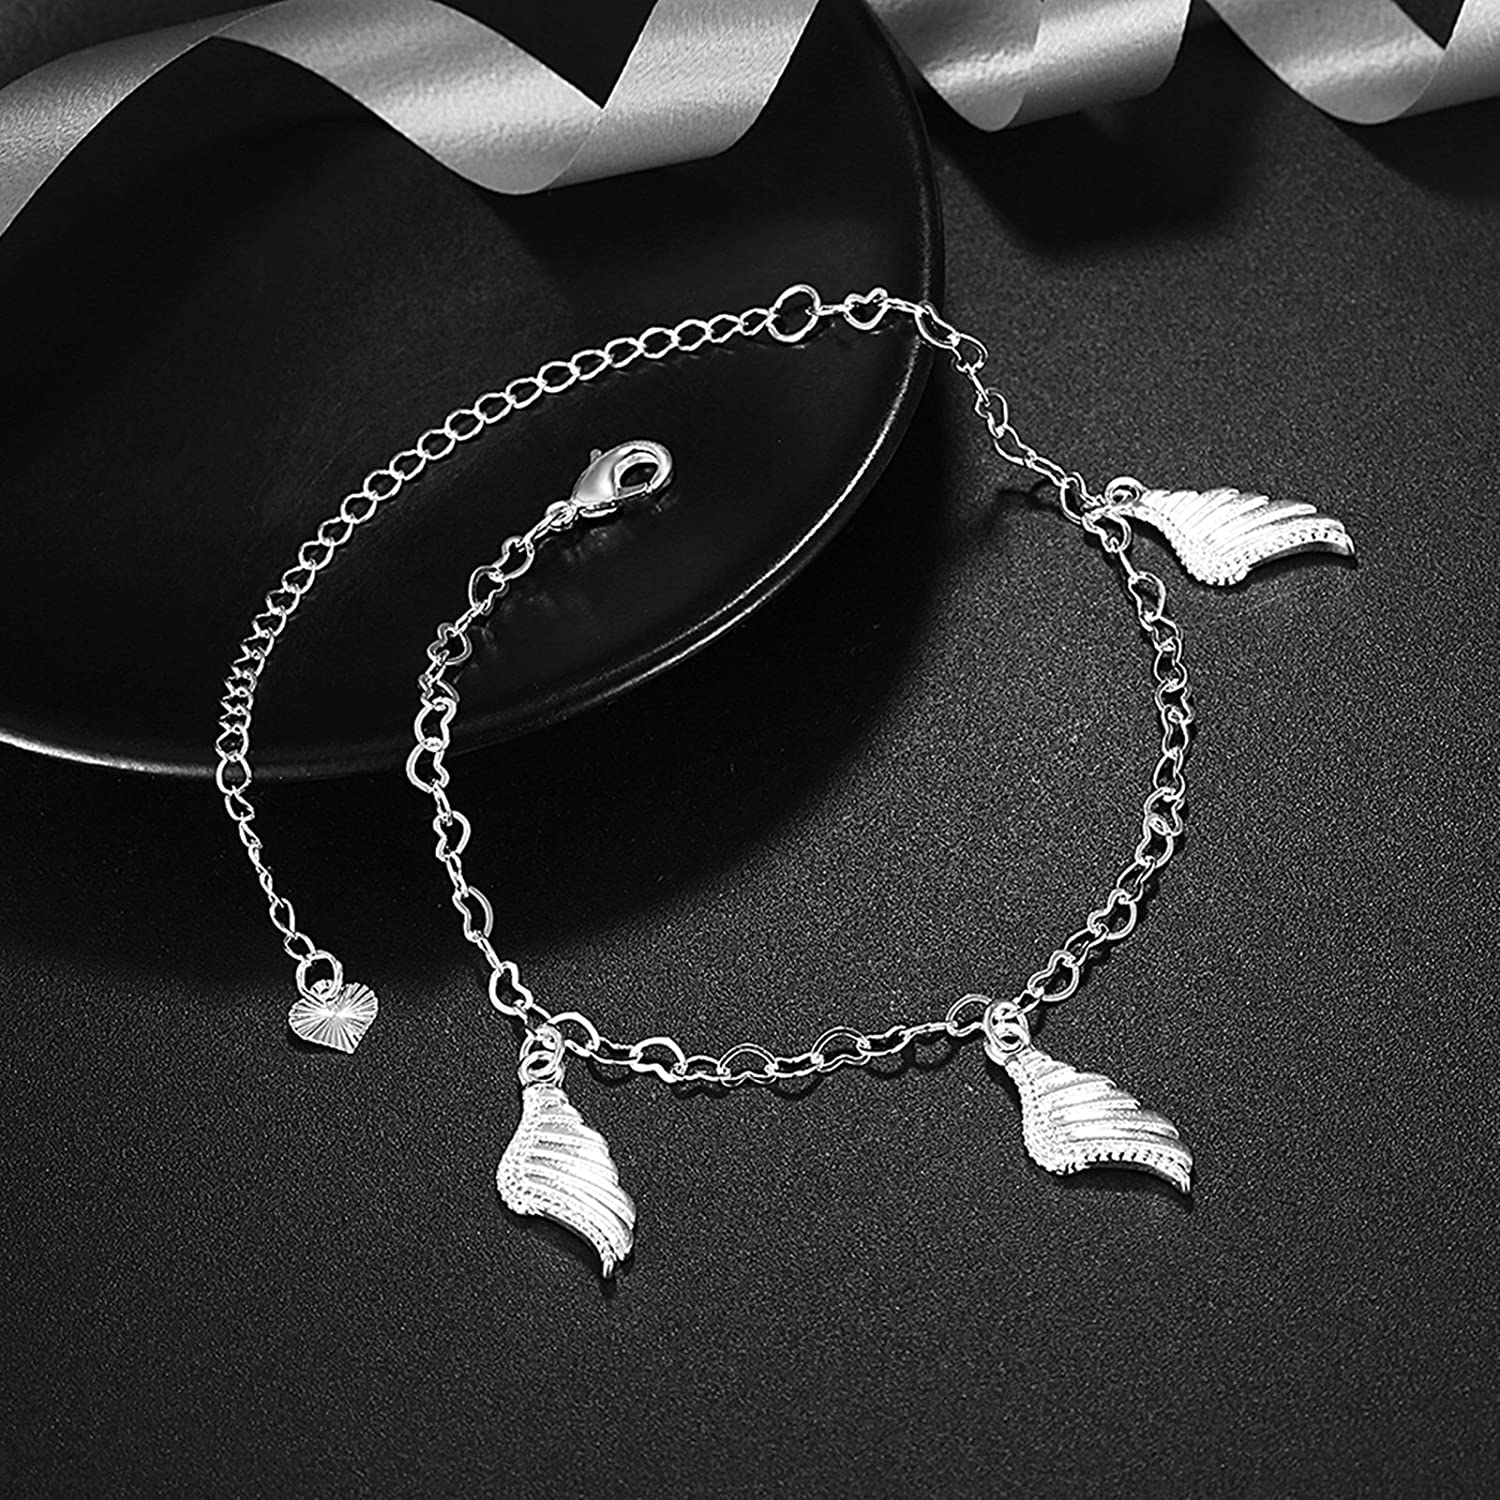 Bishilin Anklet Chain Jewelry Heart Angel Wings anklet chain 20 CM